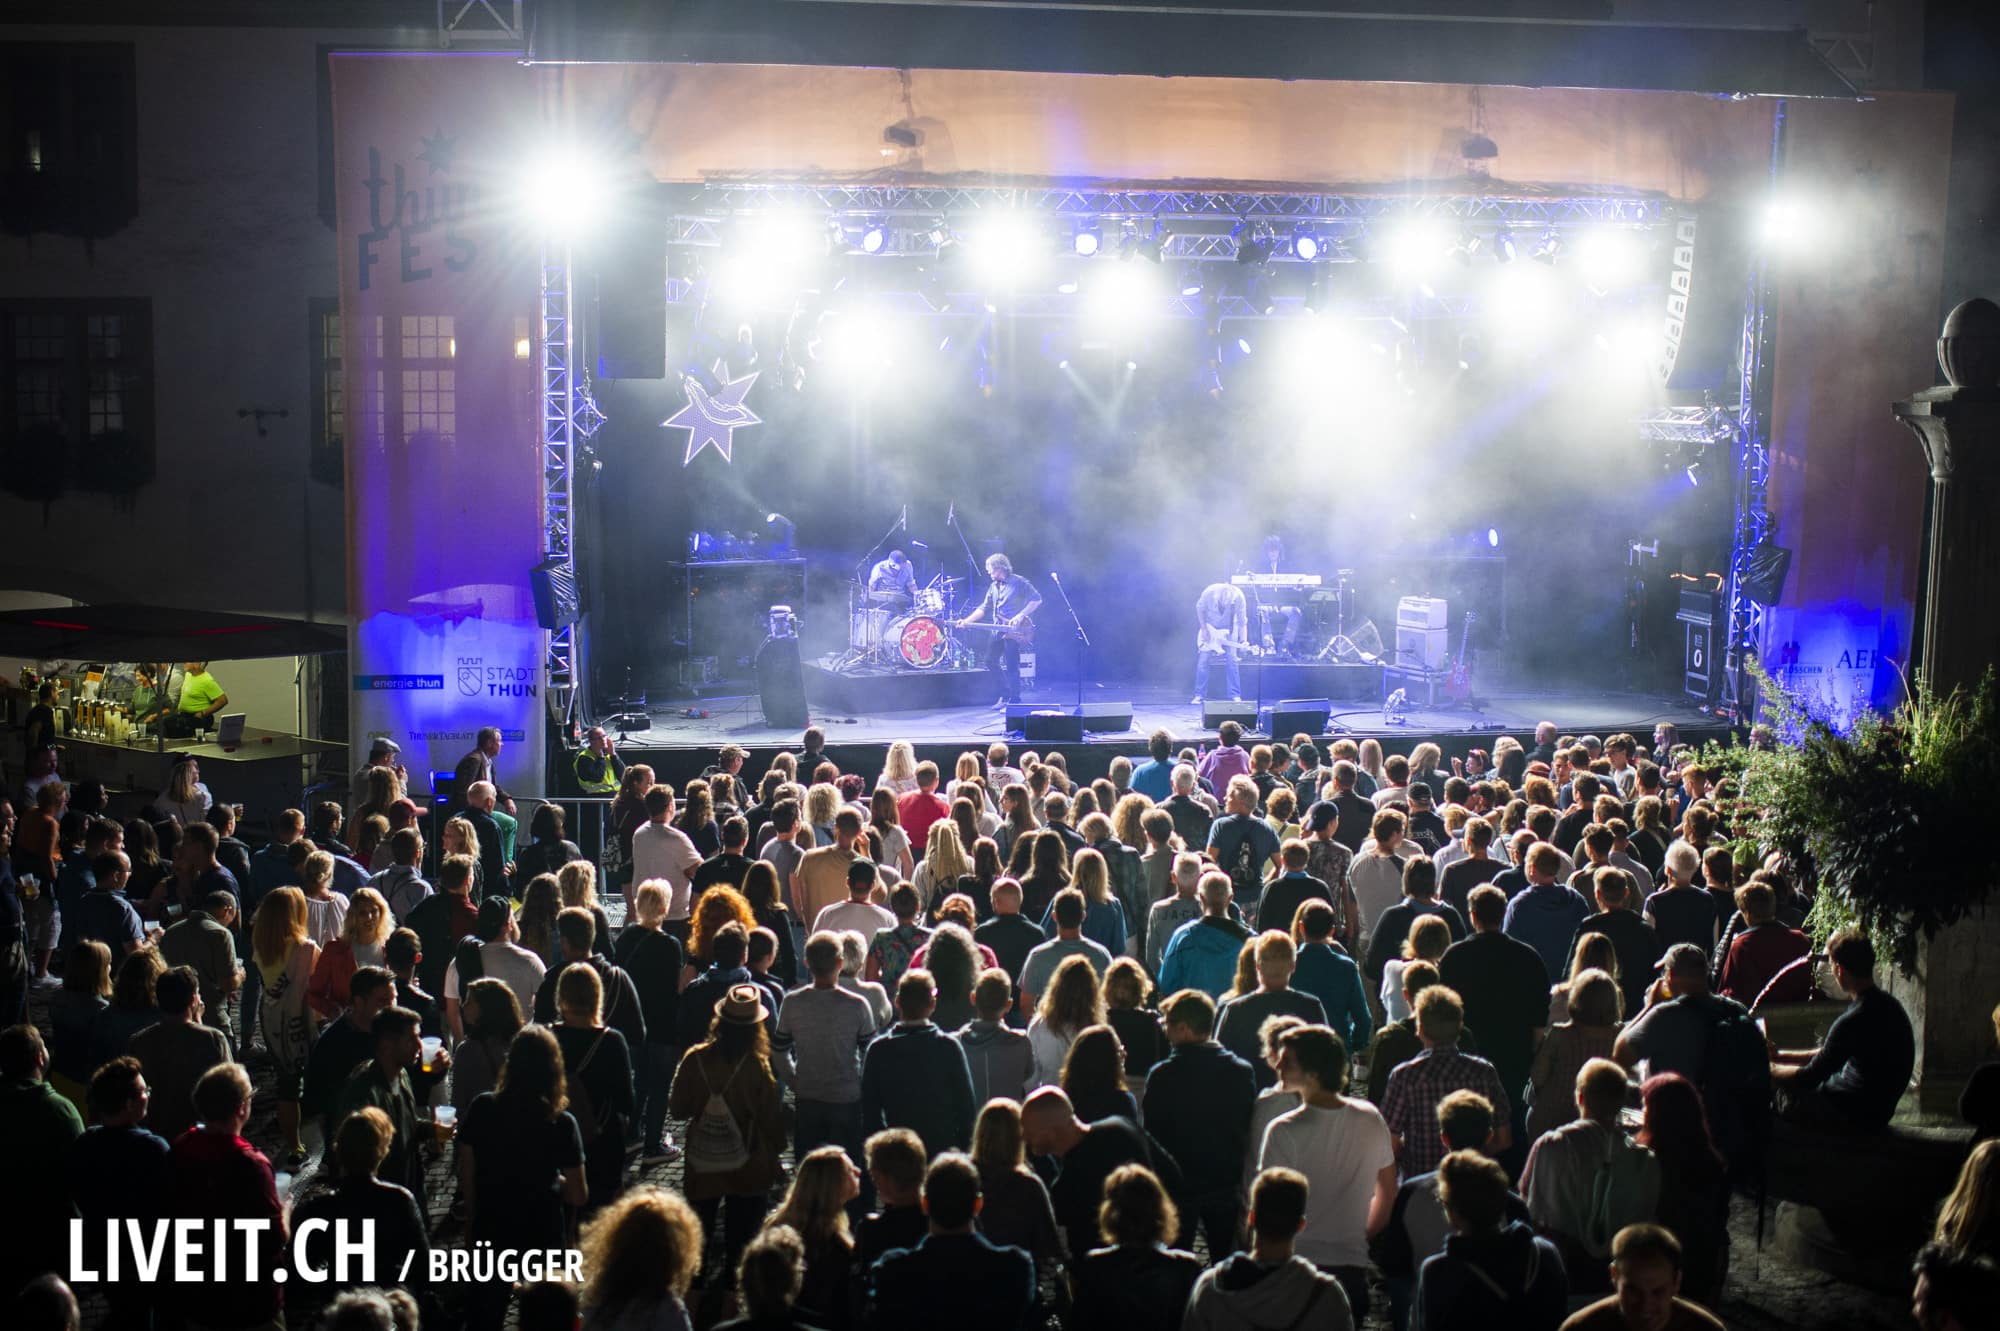 Span Thunfest 2018 in Thun. (Dominic Bruegger for liveit.ch)